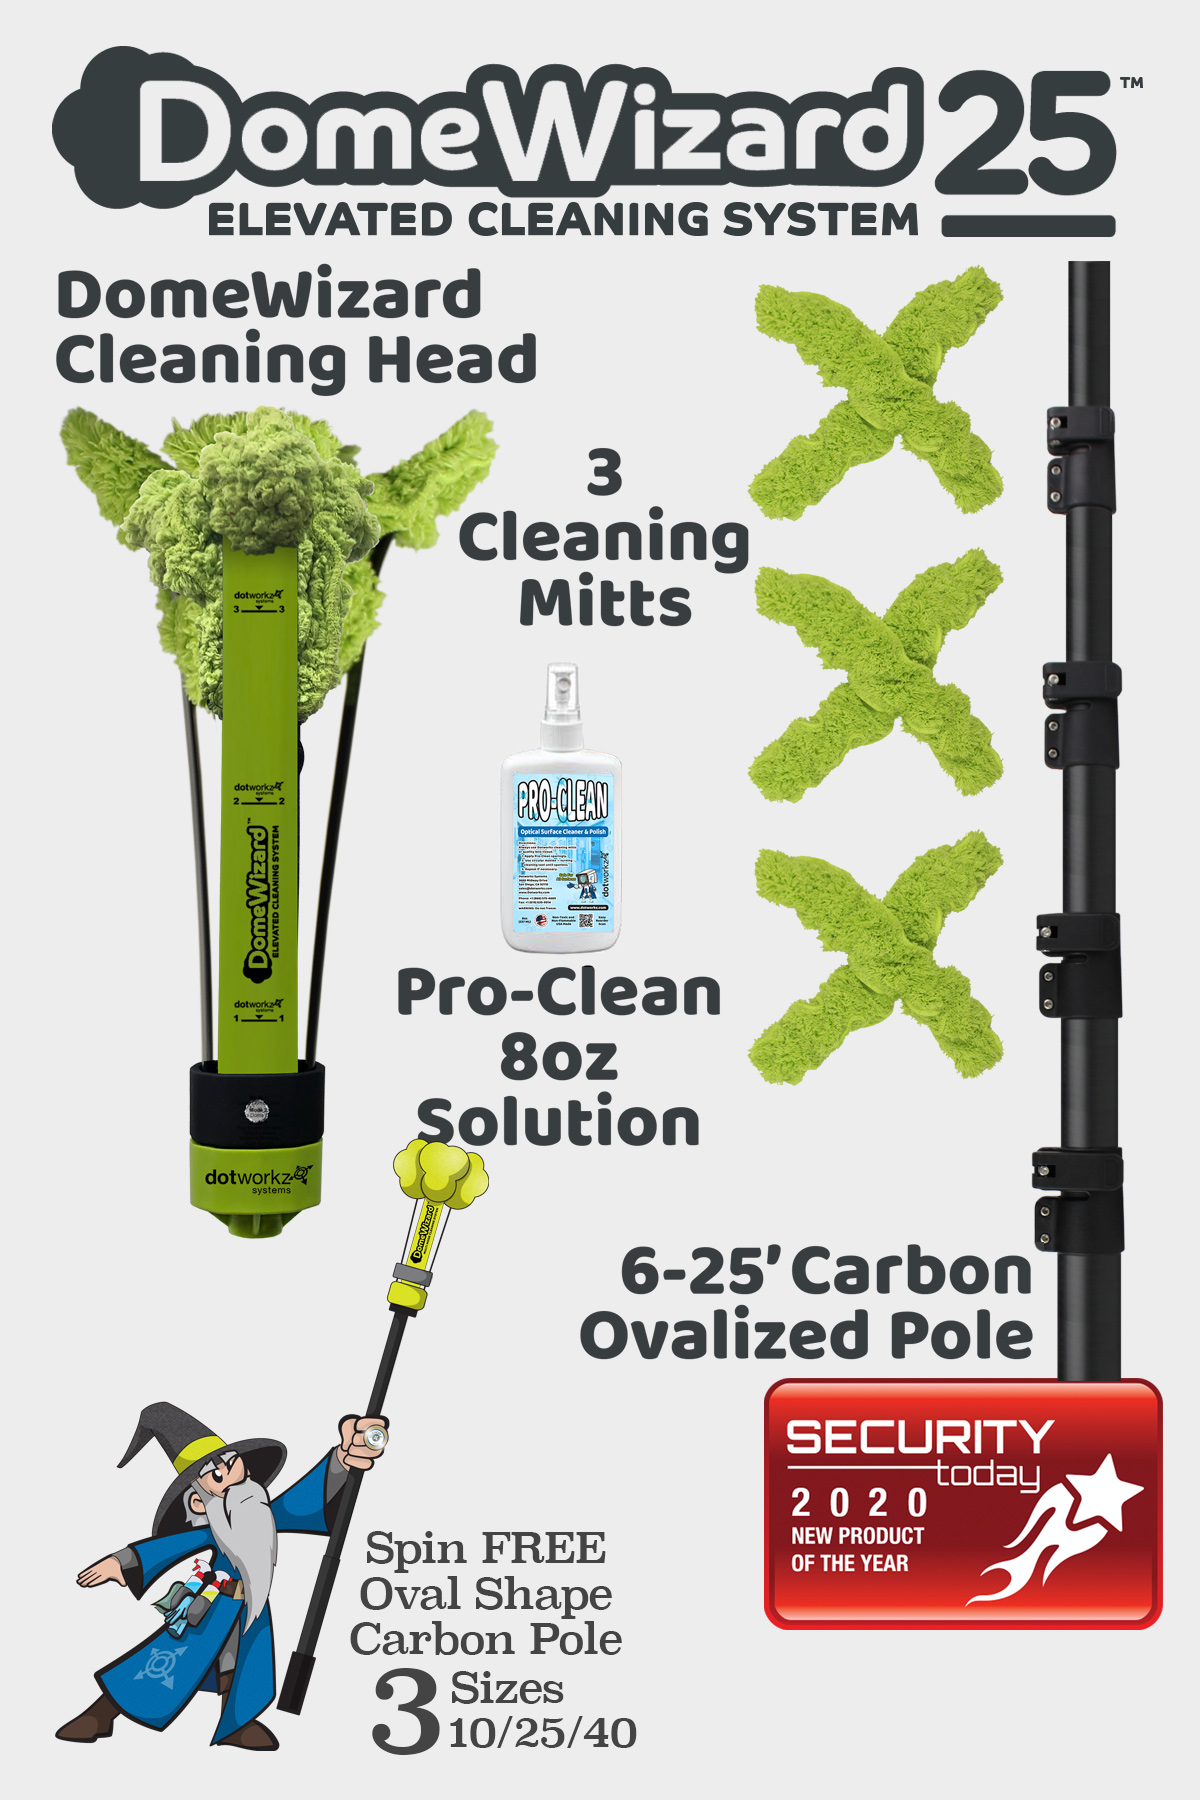 DomeWizard 25 - Elevated Cleaning System with Multiple Cleaning Modes from Dotworkz 2020